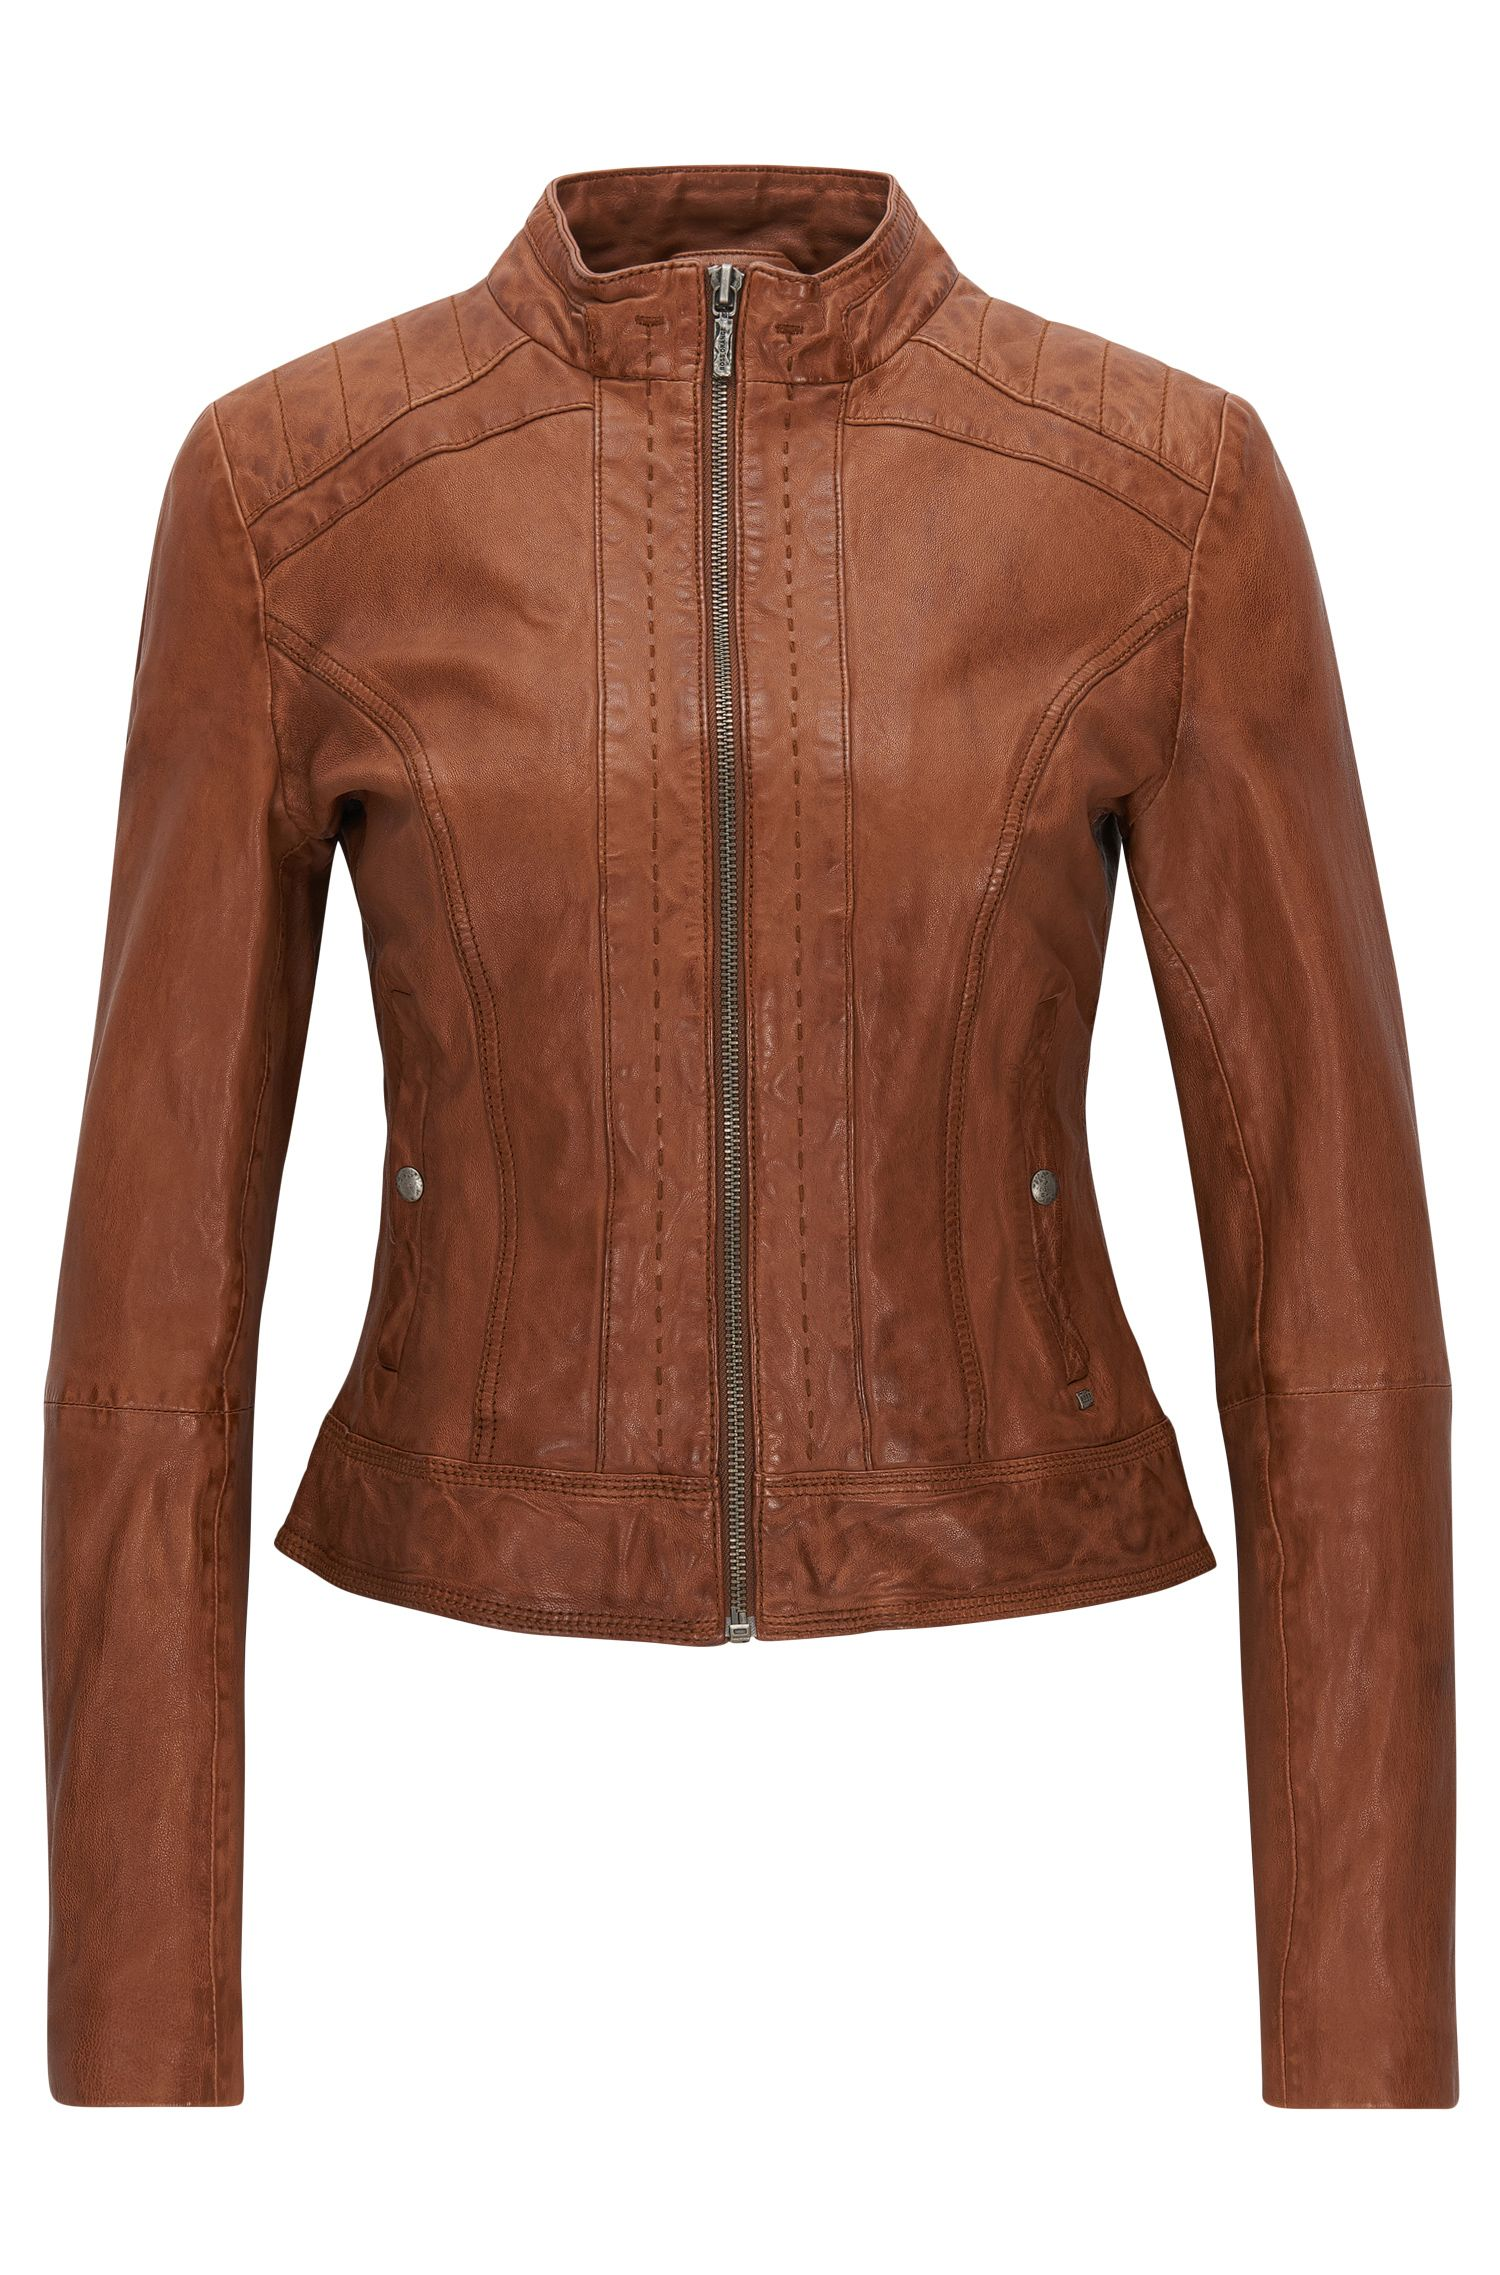 Sheepskin Leather Jacket | Janabelle